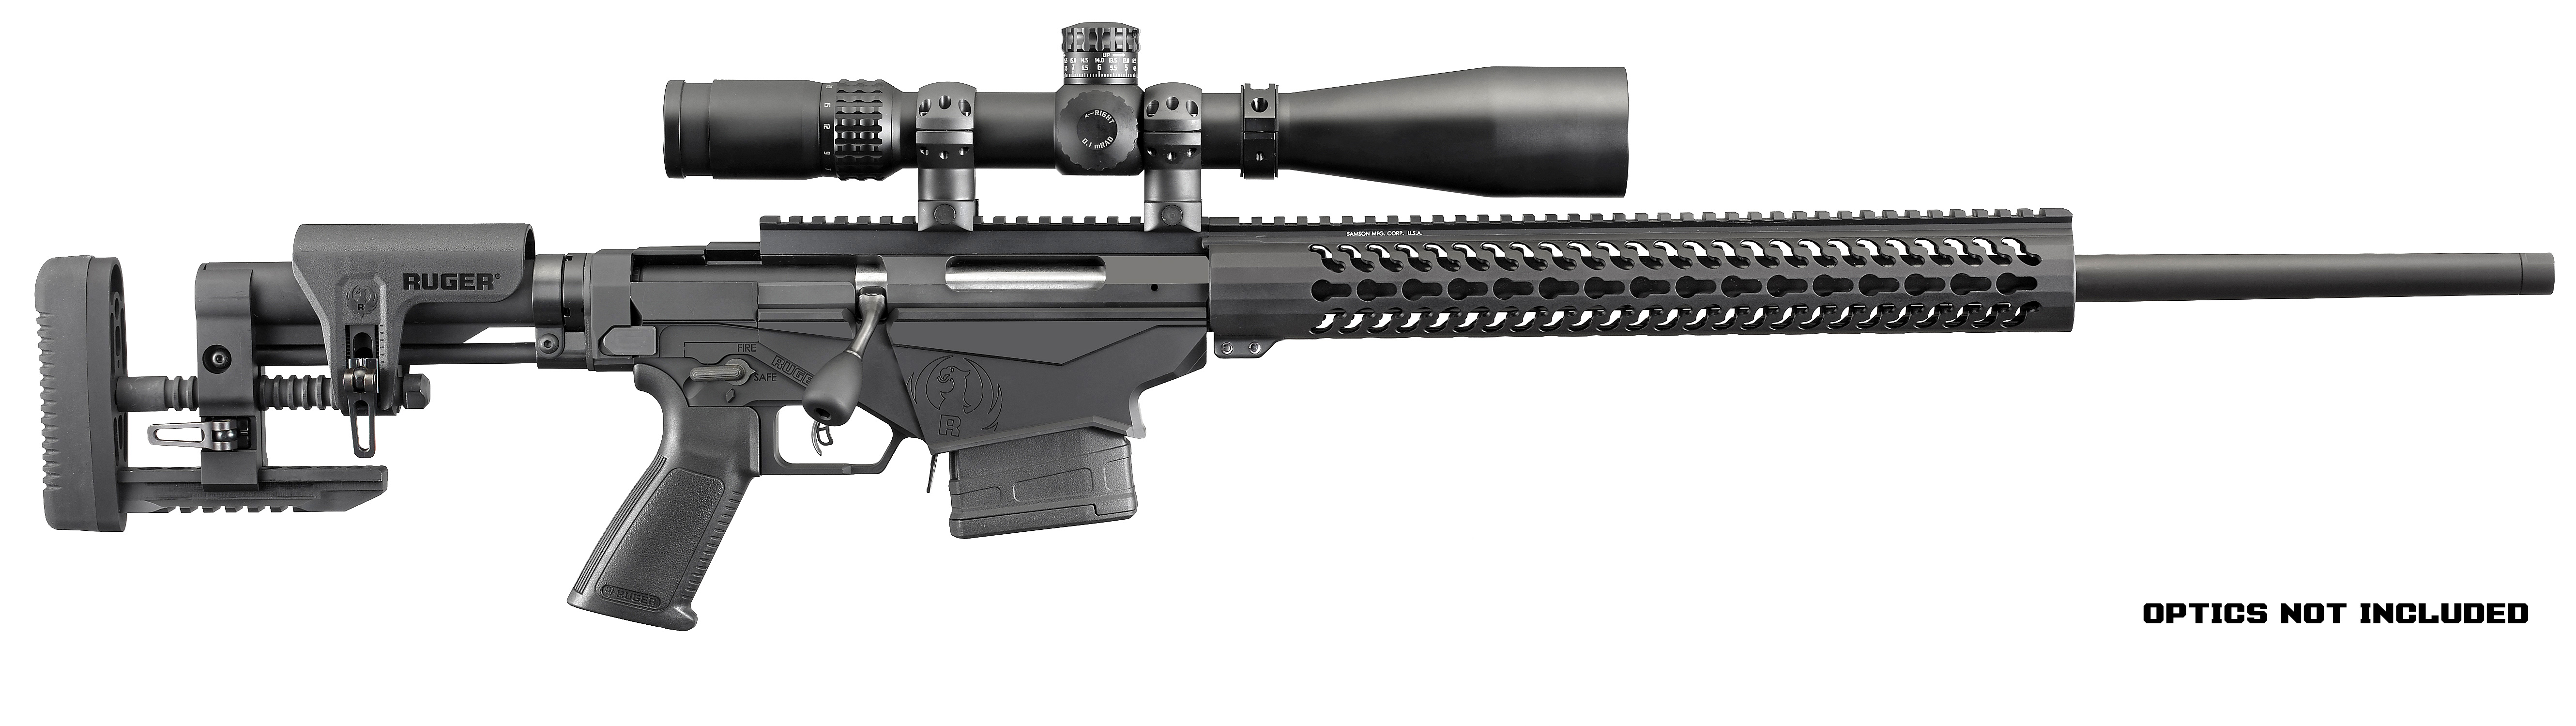 Ruger Precision Rifle - .308 Win. Gen 1